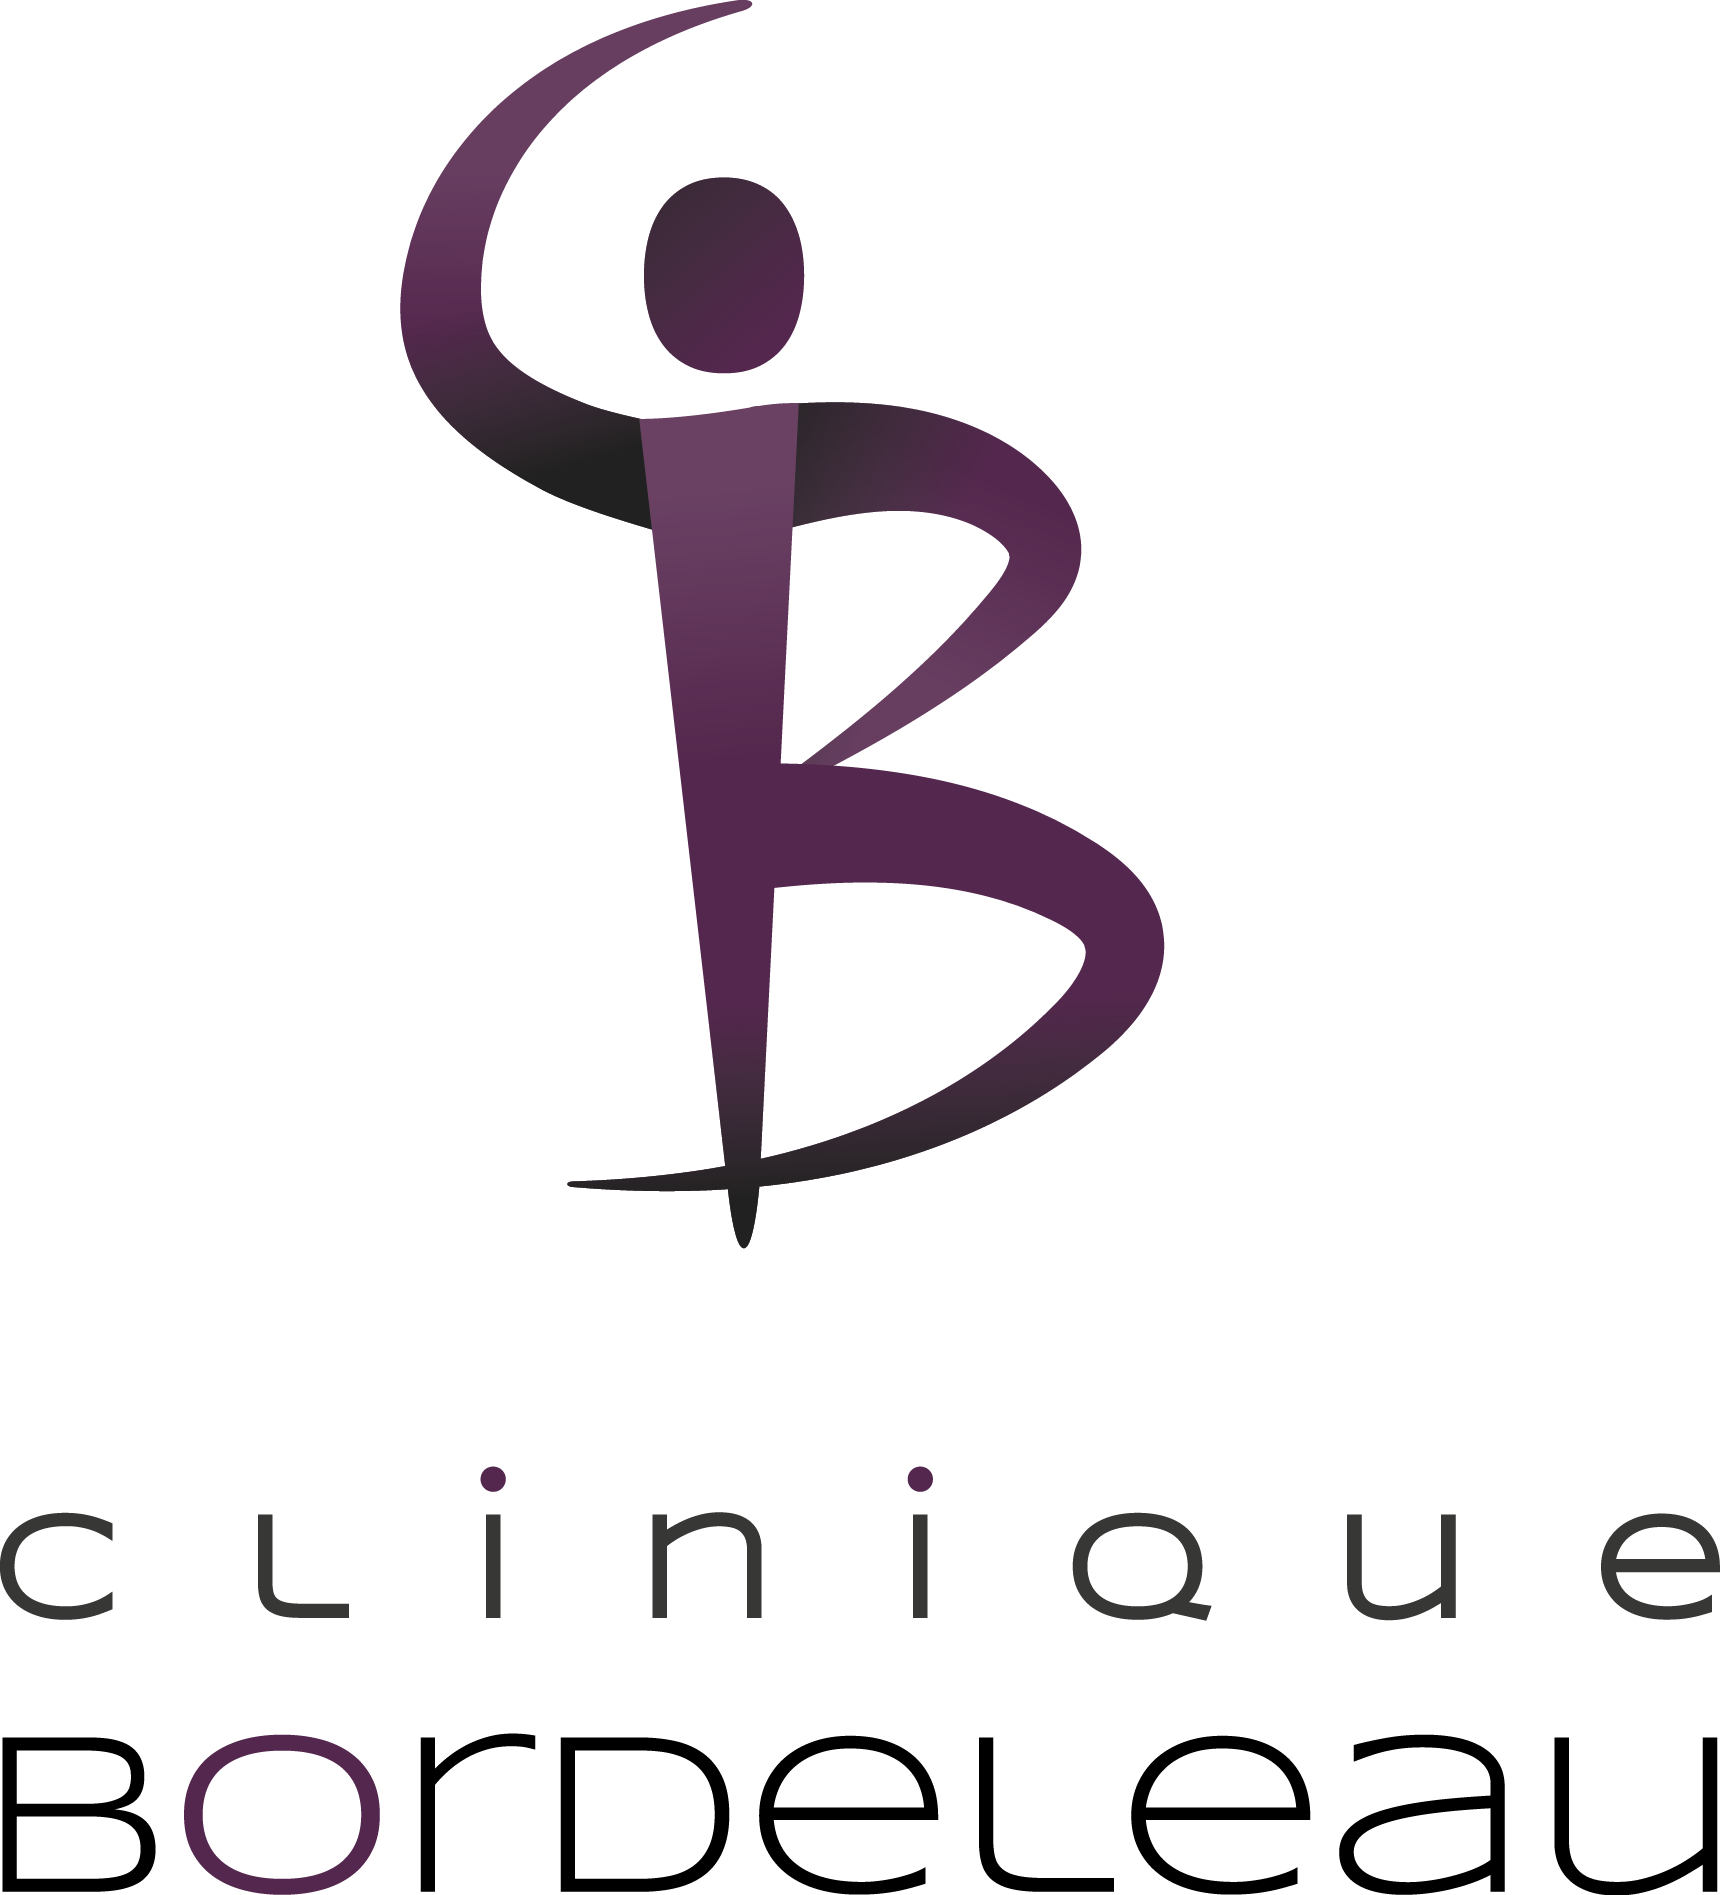 CLINIQUE BORDELEAU